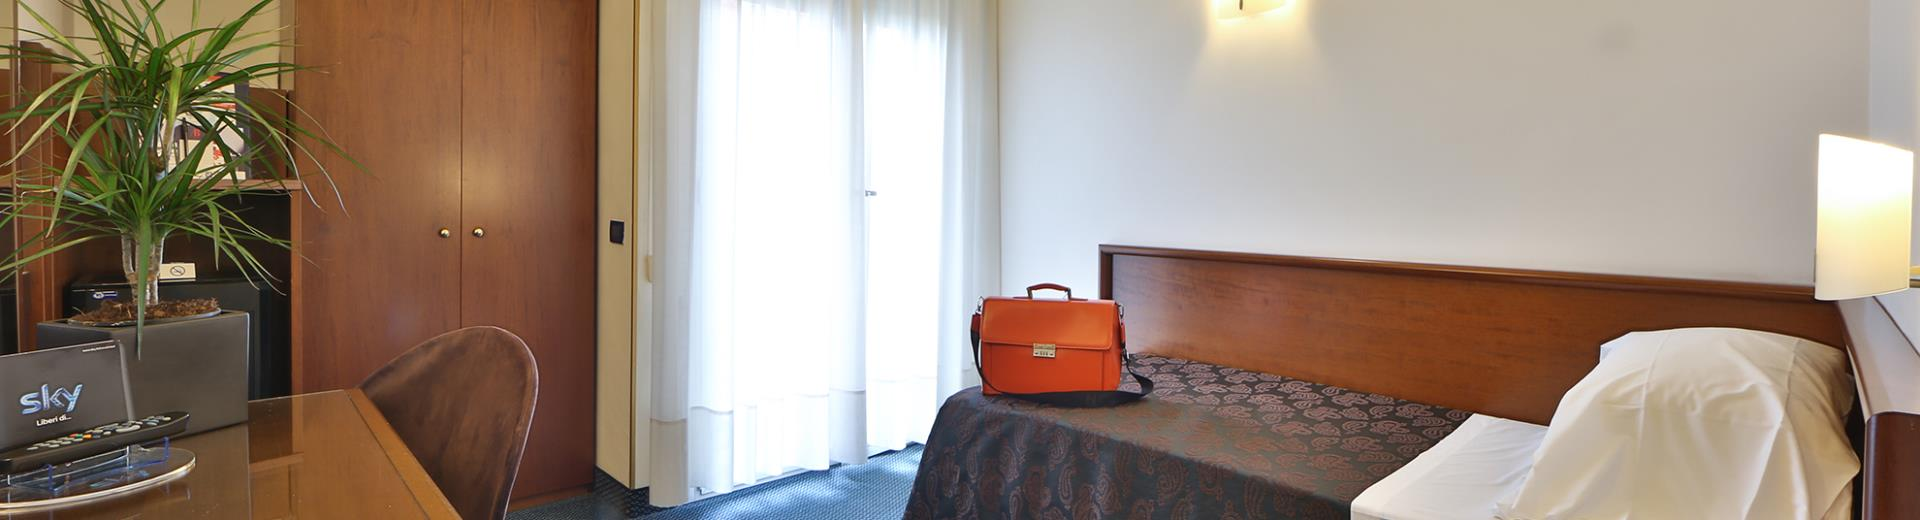 Choose the comfort of the rooms of Best Western Hotel Biri, Padova 4 star!